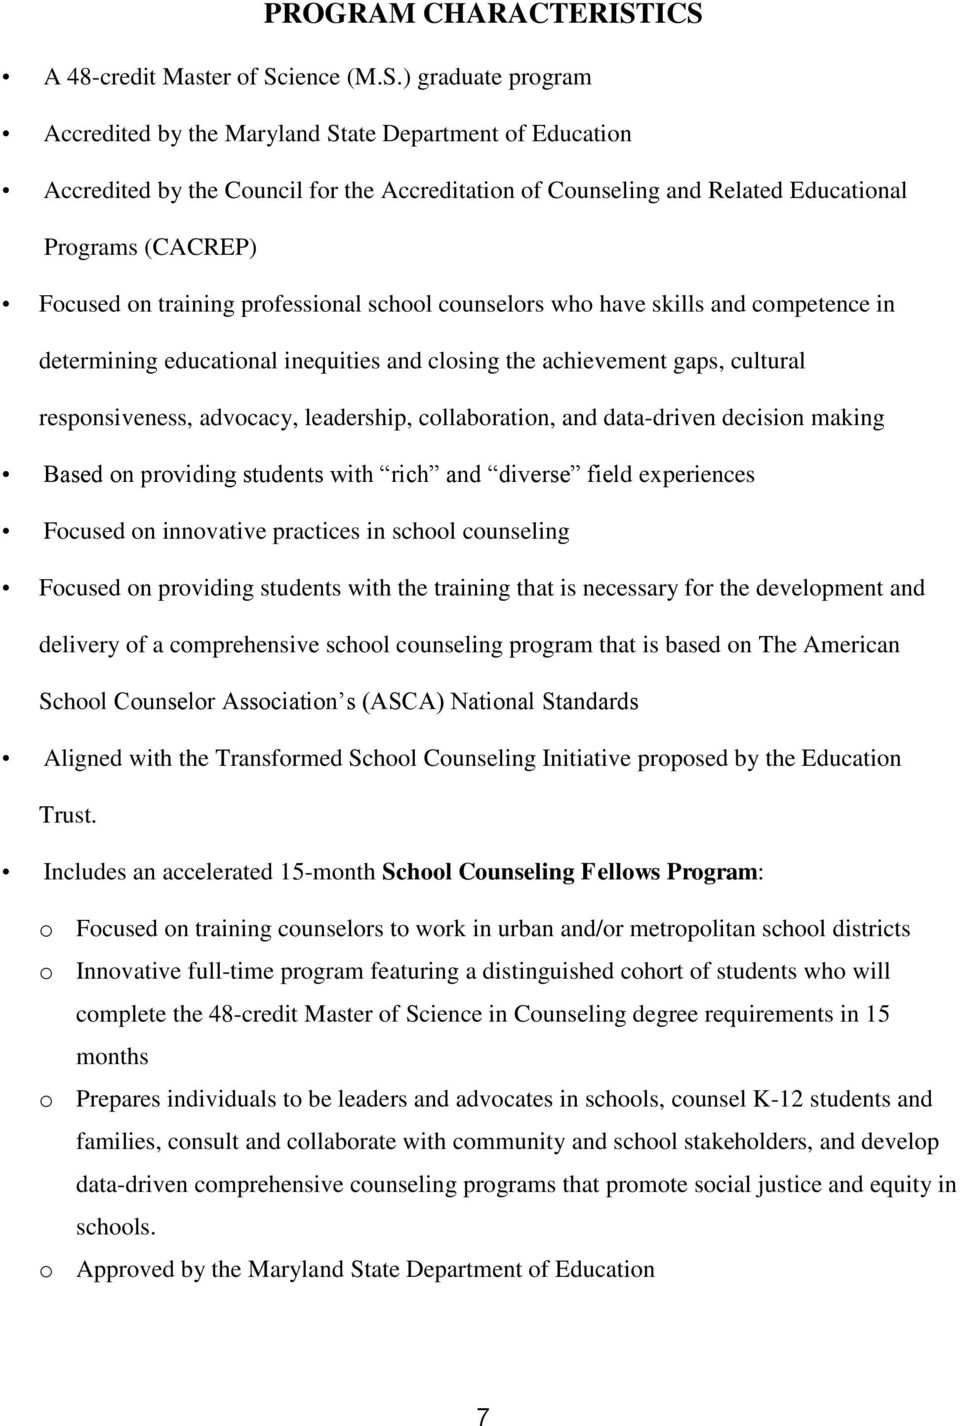 Educational Programs (CACREP) Focused on training professional school counselors who have skills and competence in determining educational inequities and closing the achievement gaps, cultural